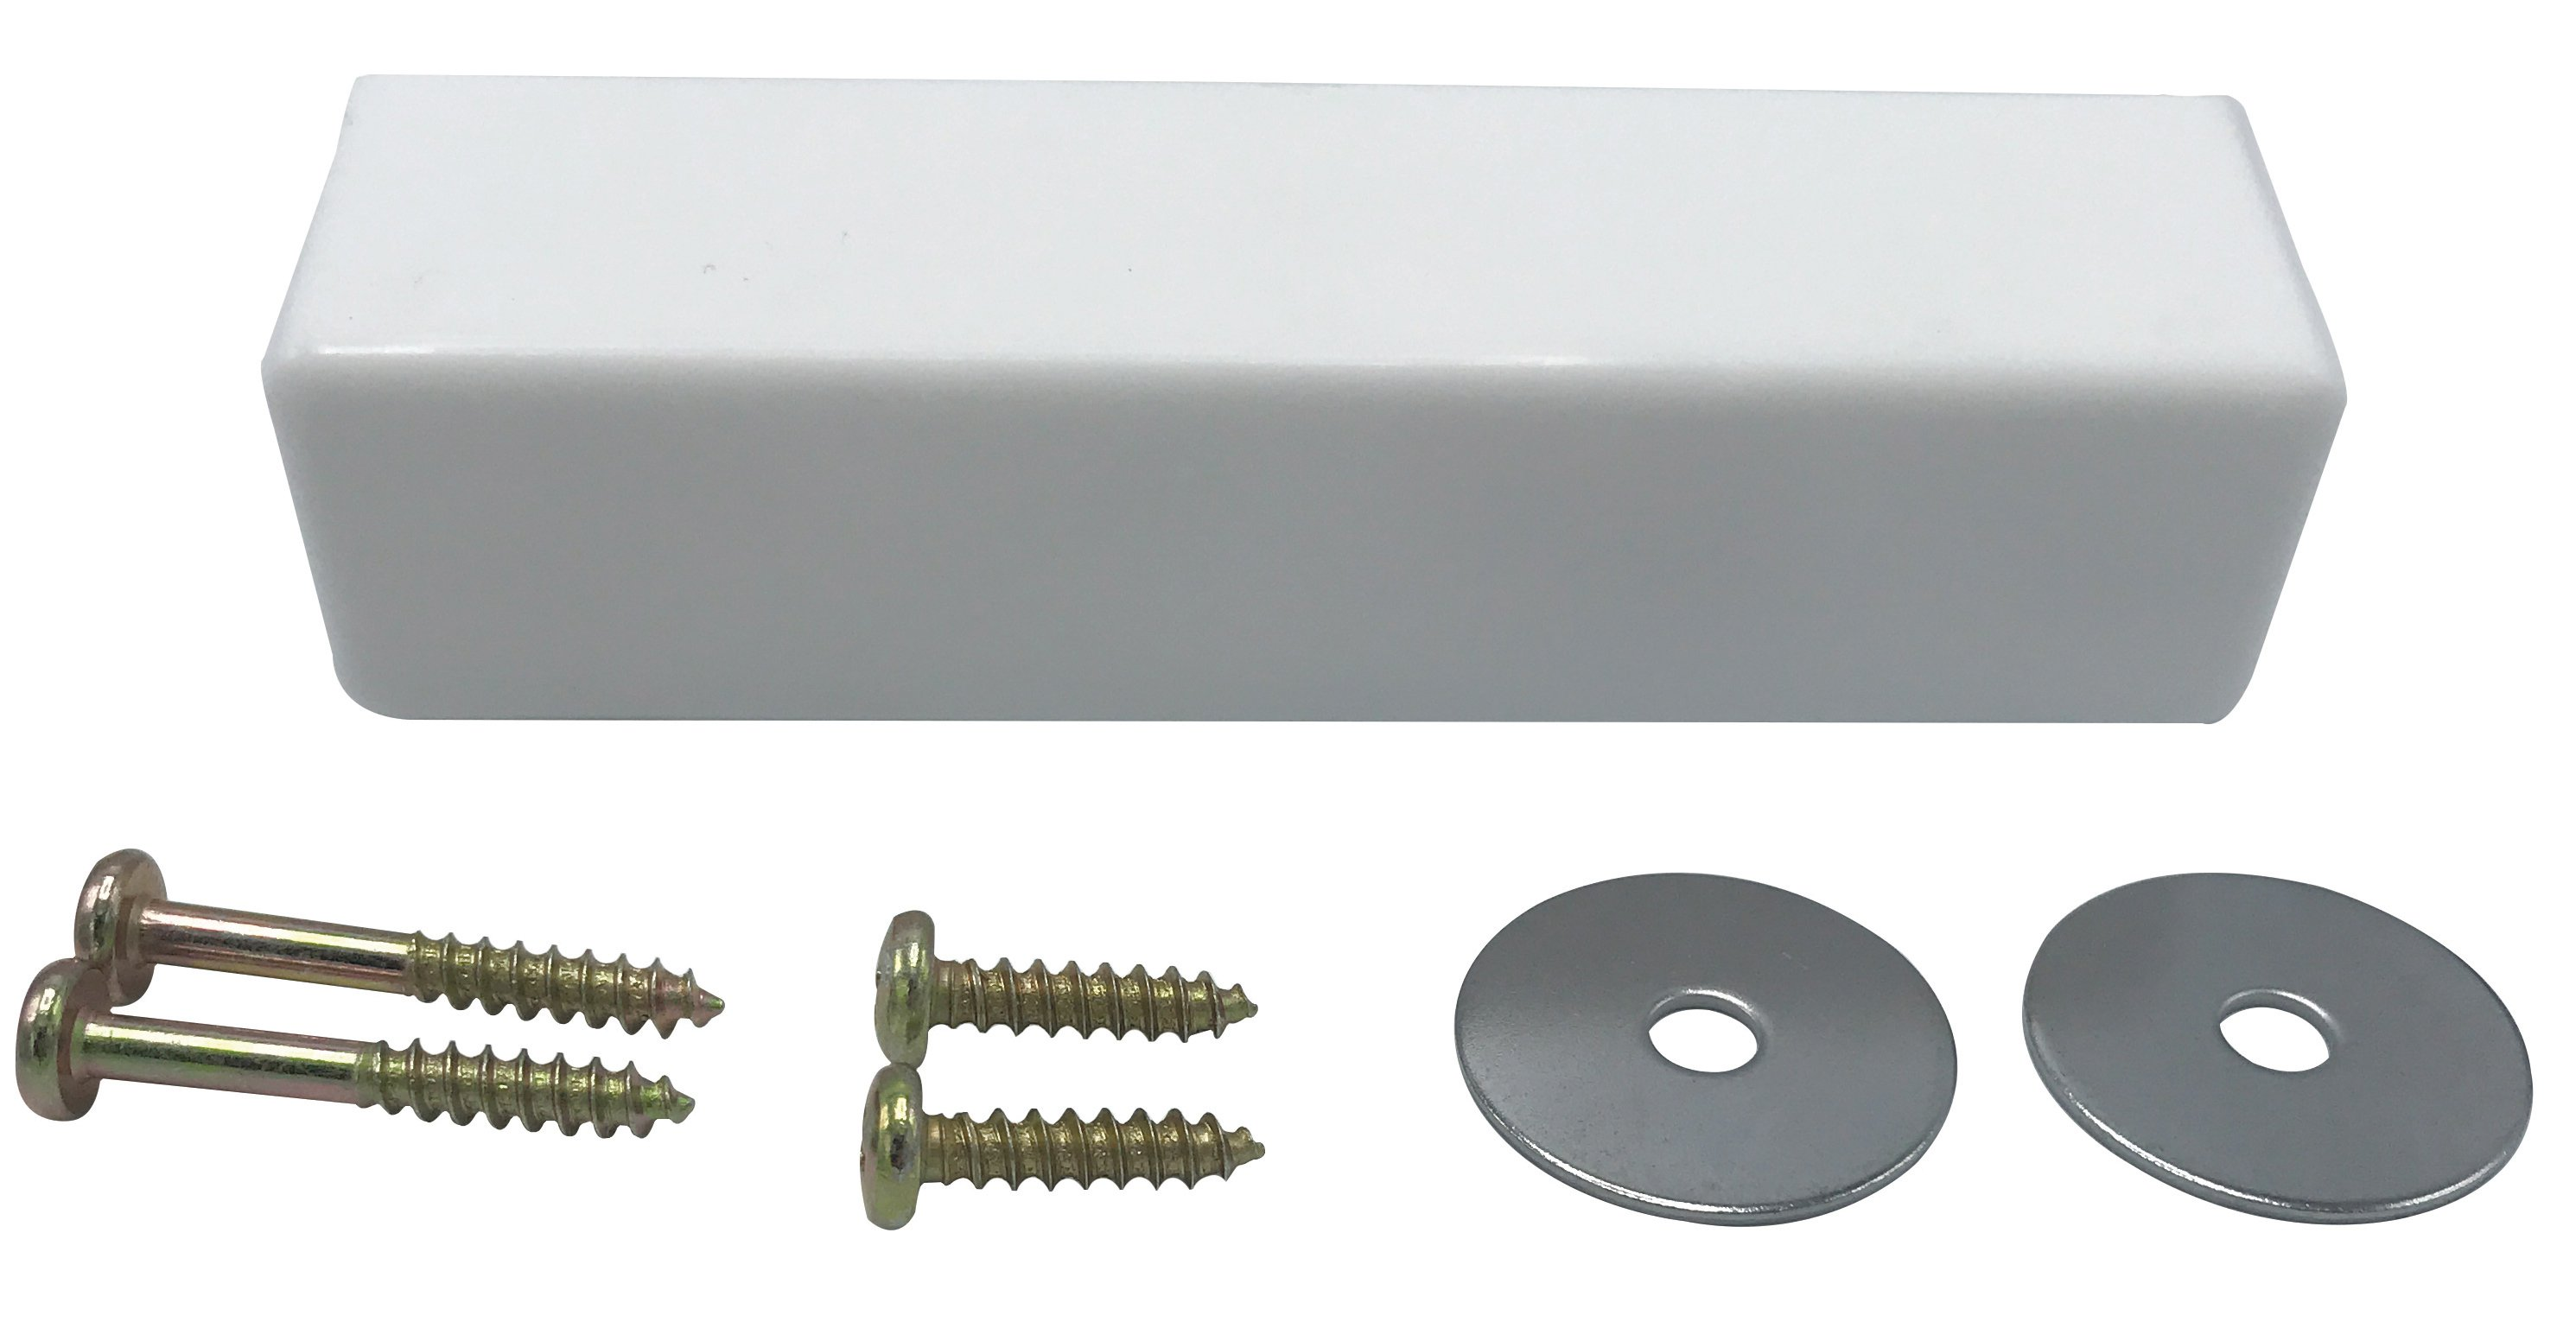 Walrich 1619004 Laundry Faucet Mounting Block